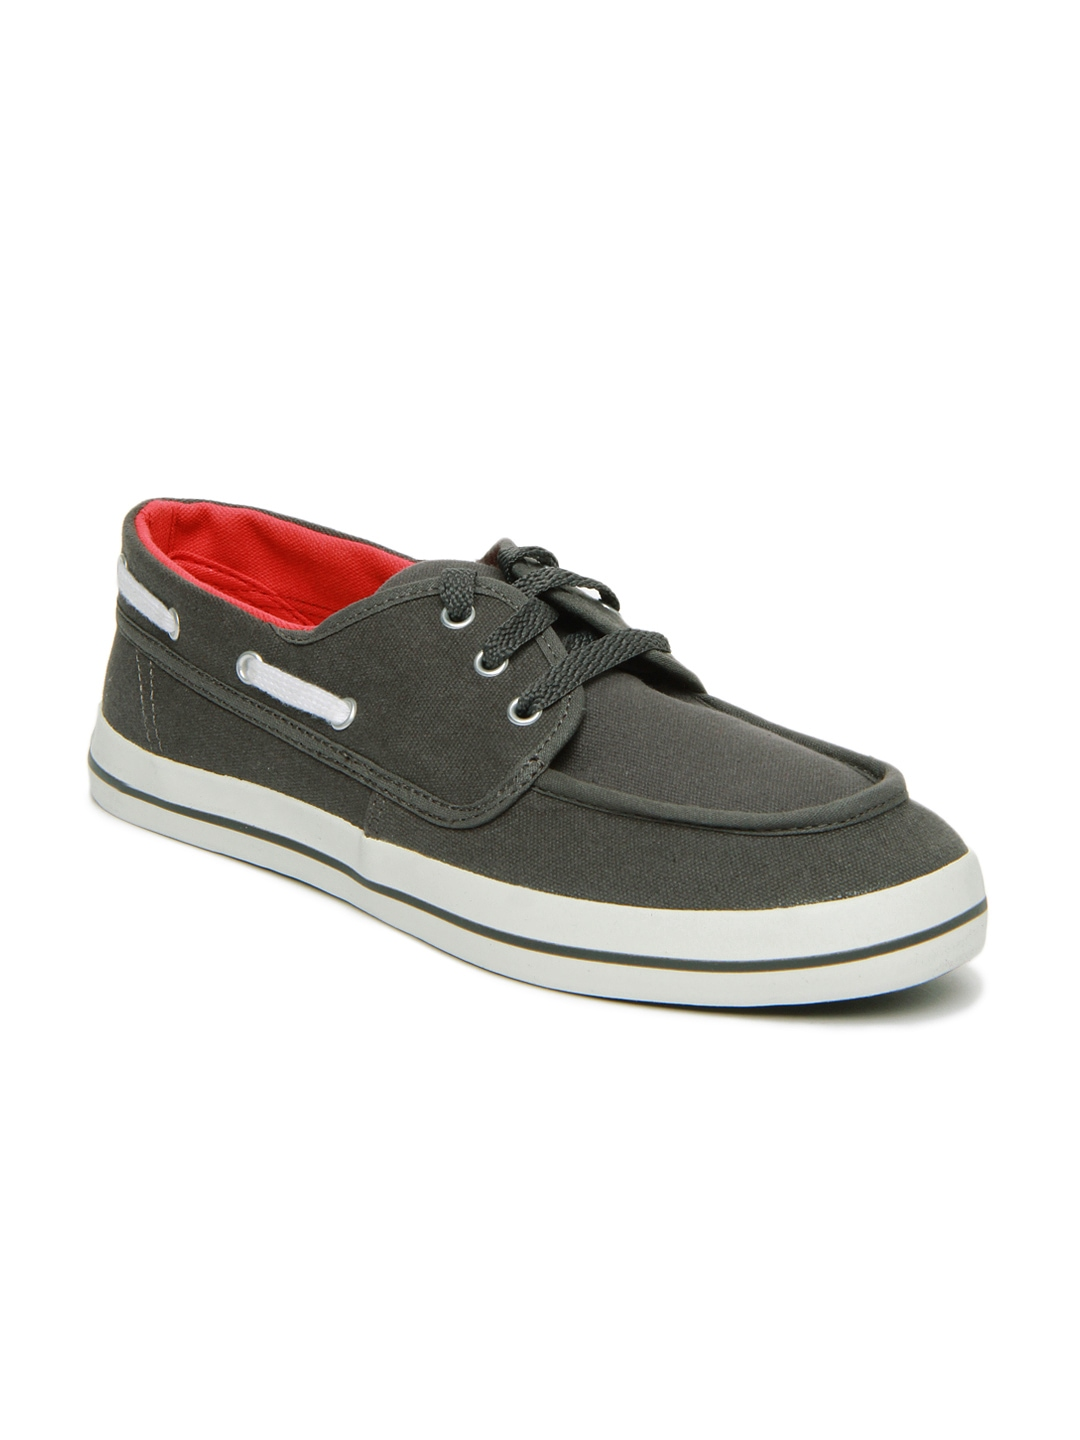 Buy Shoes Online Myntra